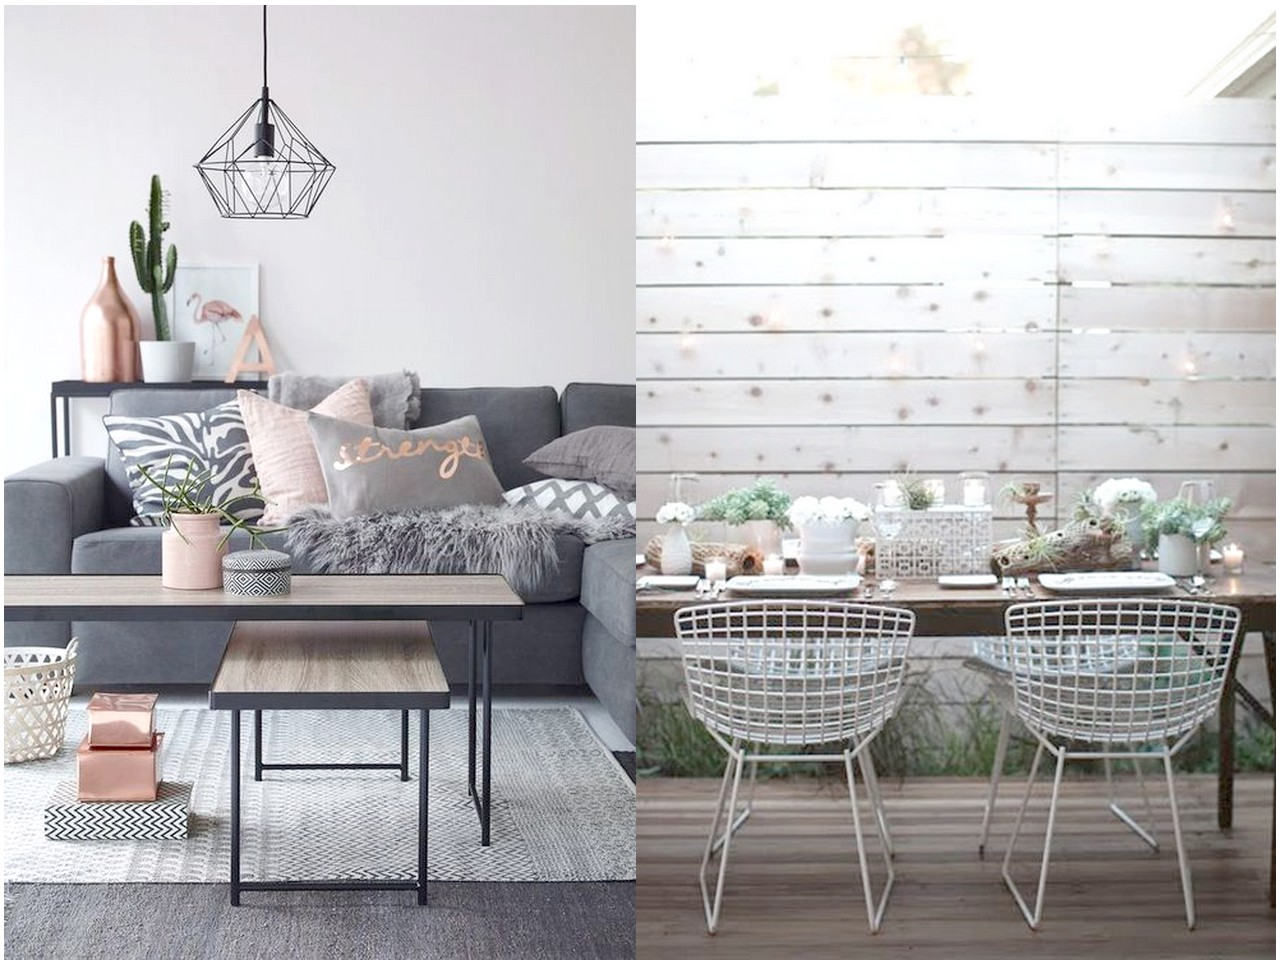 Tendencias 2016 2017 decorar con metal - Salones de moda 2017 ...